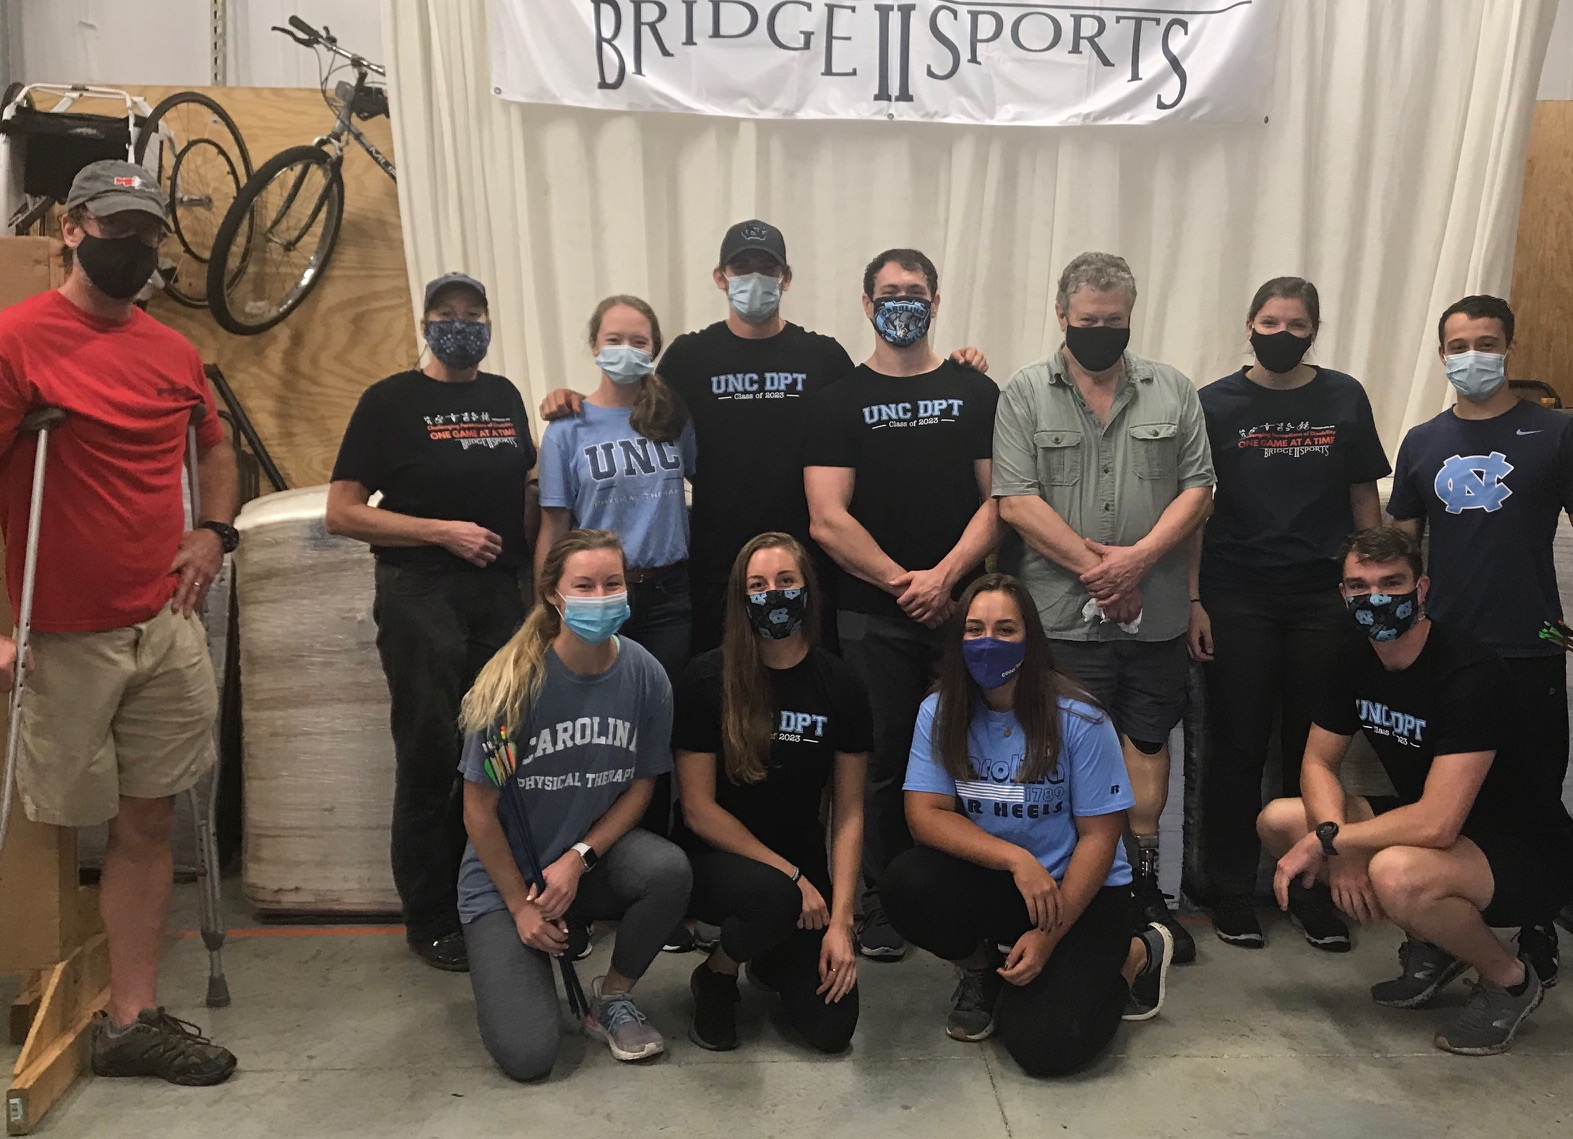 Group picture of 8 UNC Physical Therapy student volunteers posing with 4 Bridge 2 Sports staff members in the Bridge 2 Sports warehouse. All are wearing masks.